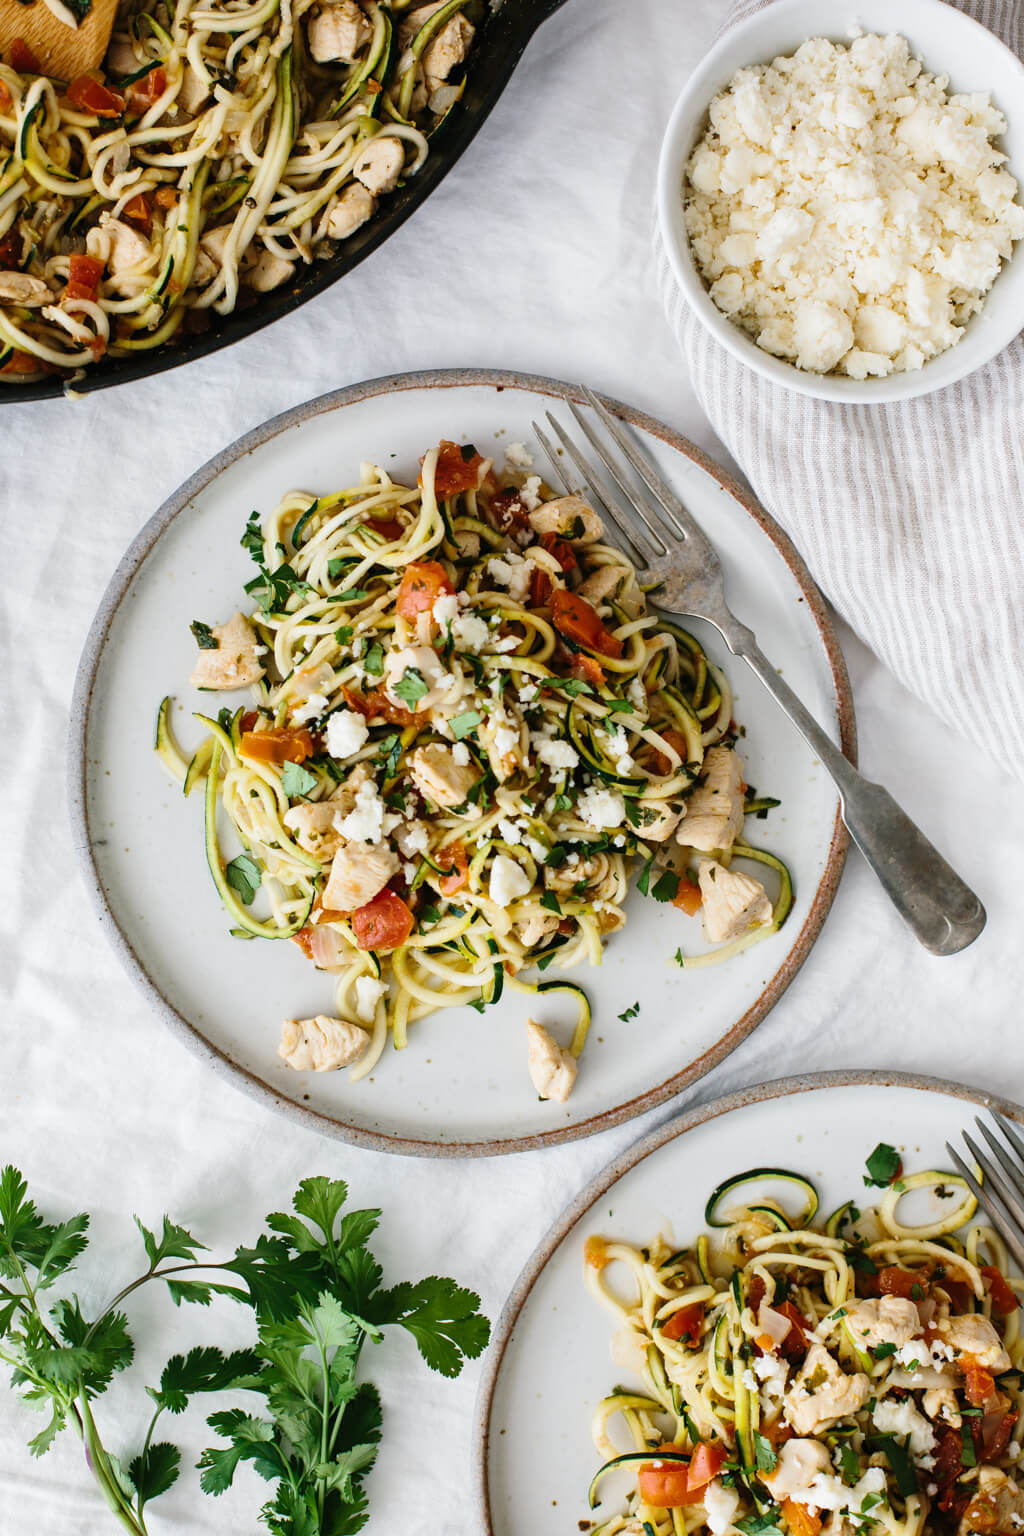 Zucchini noodles with chicken and pico de gallo on a white plate.